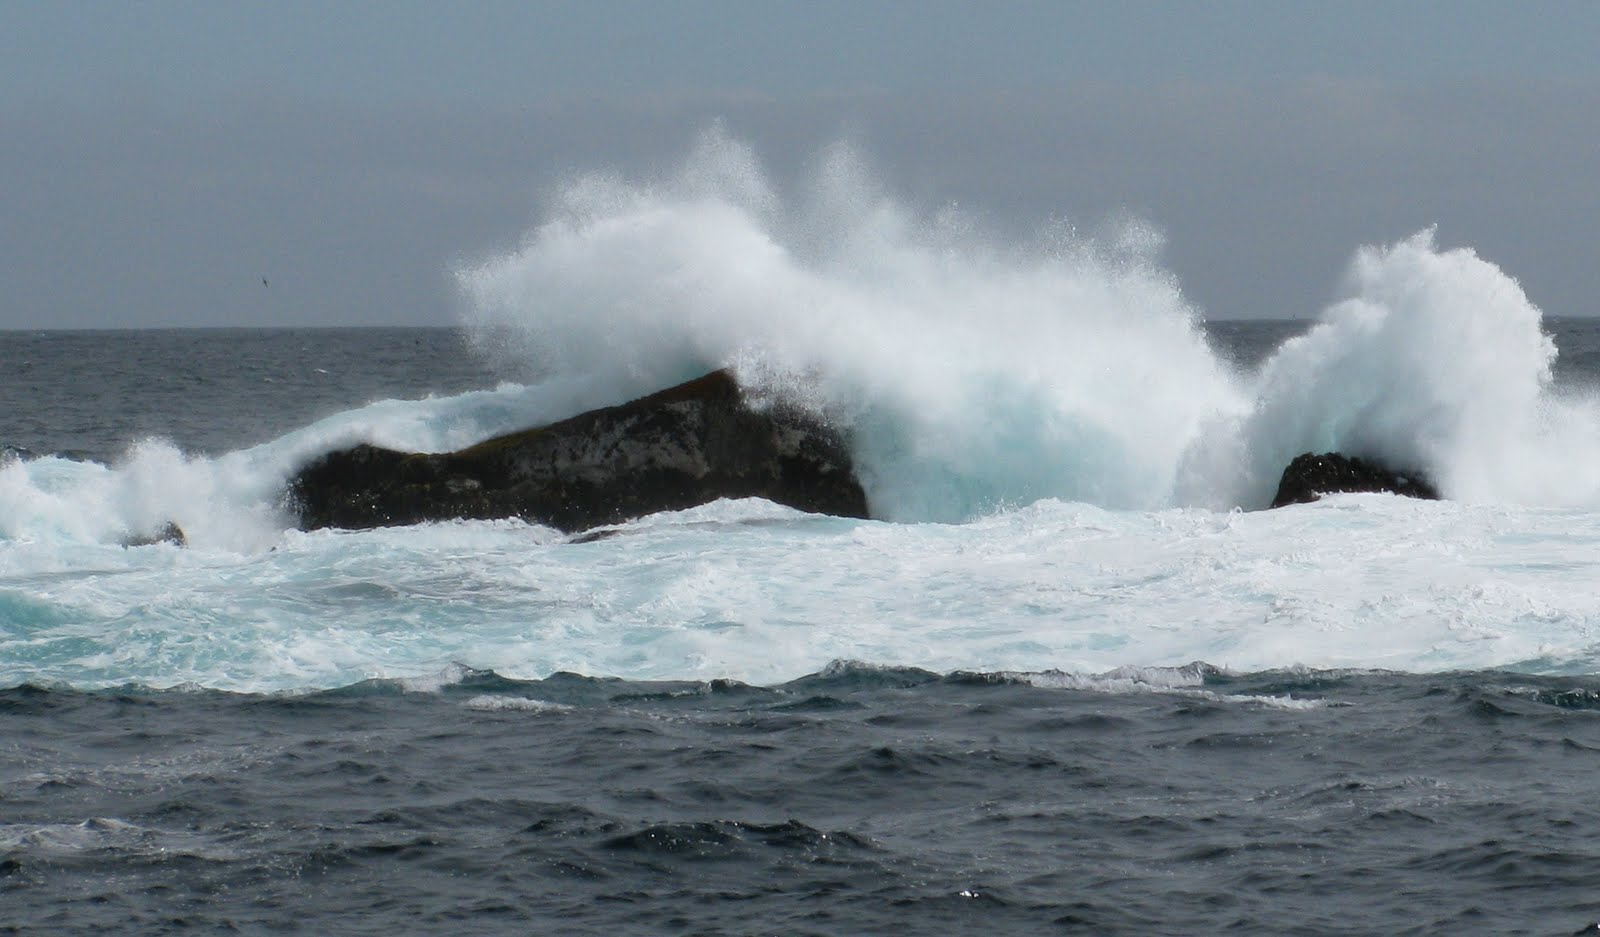 http://successiontoday.com/wp-content/uploads/2011/02/choppy-waters.jpg